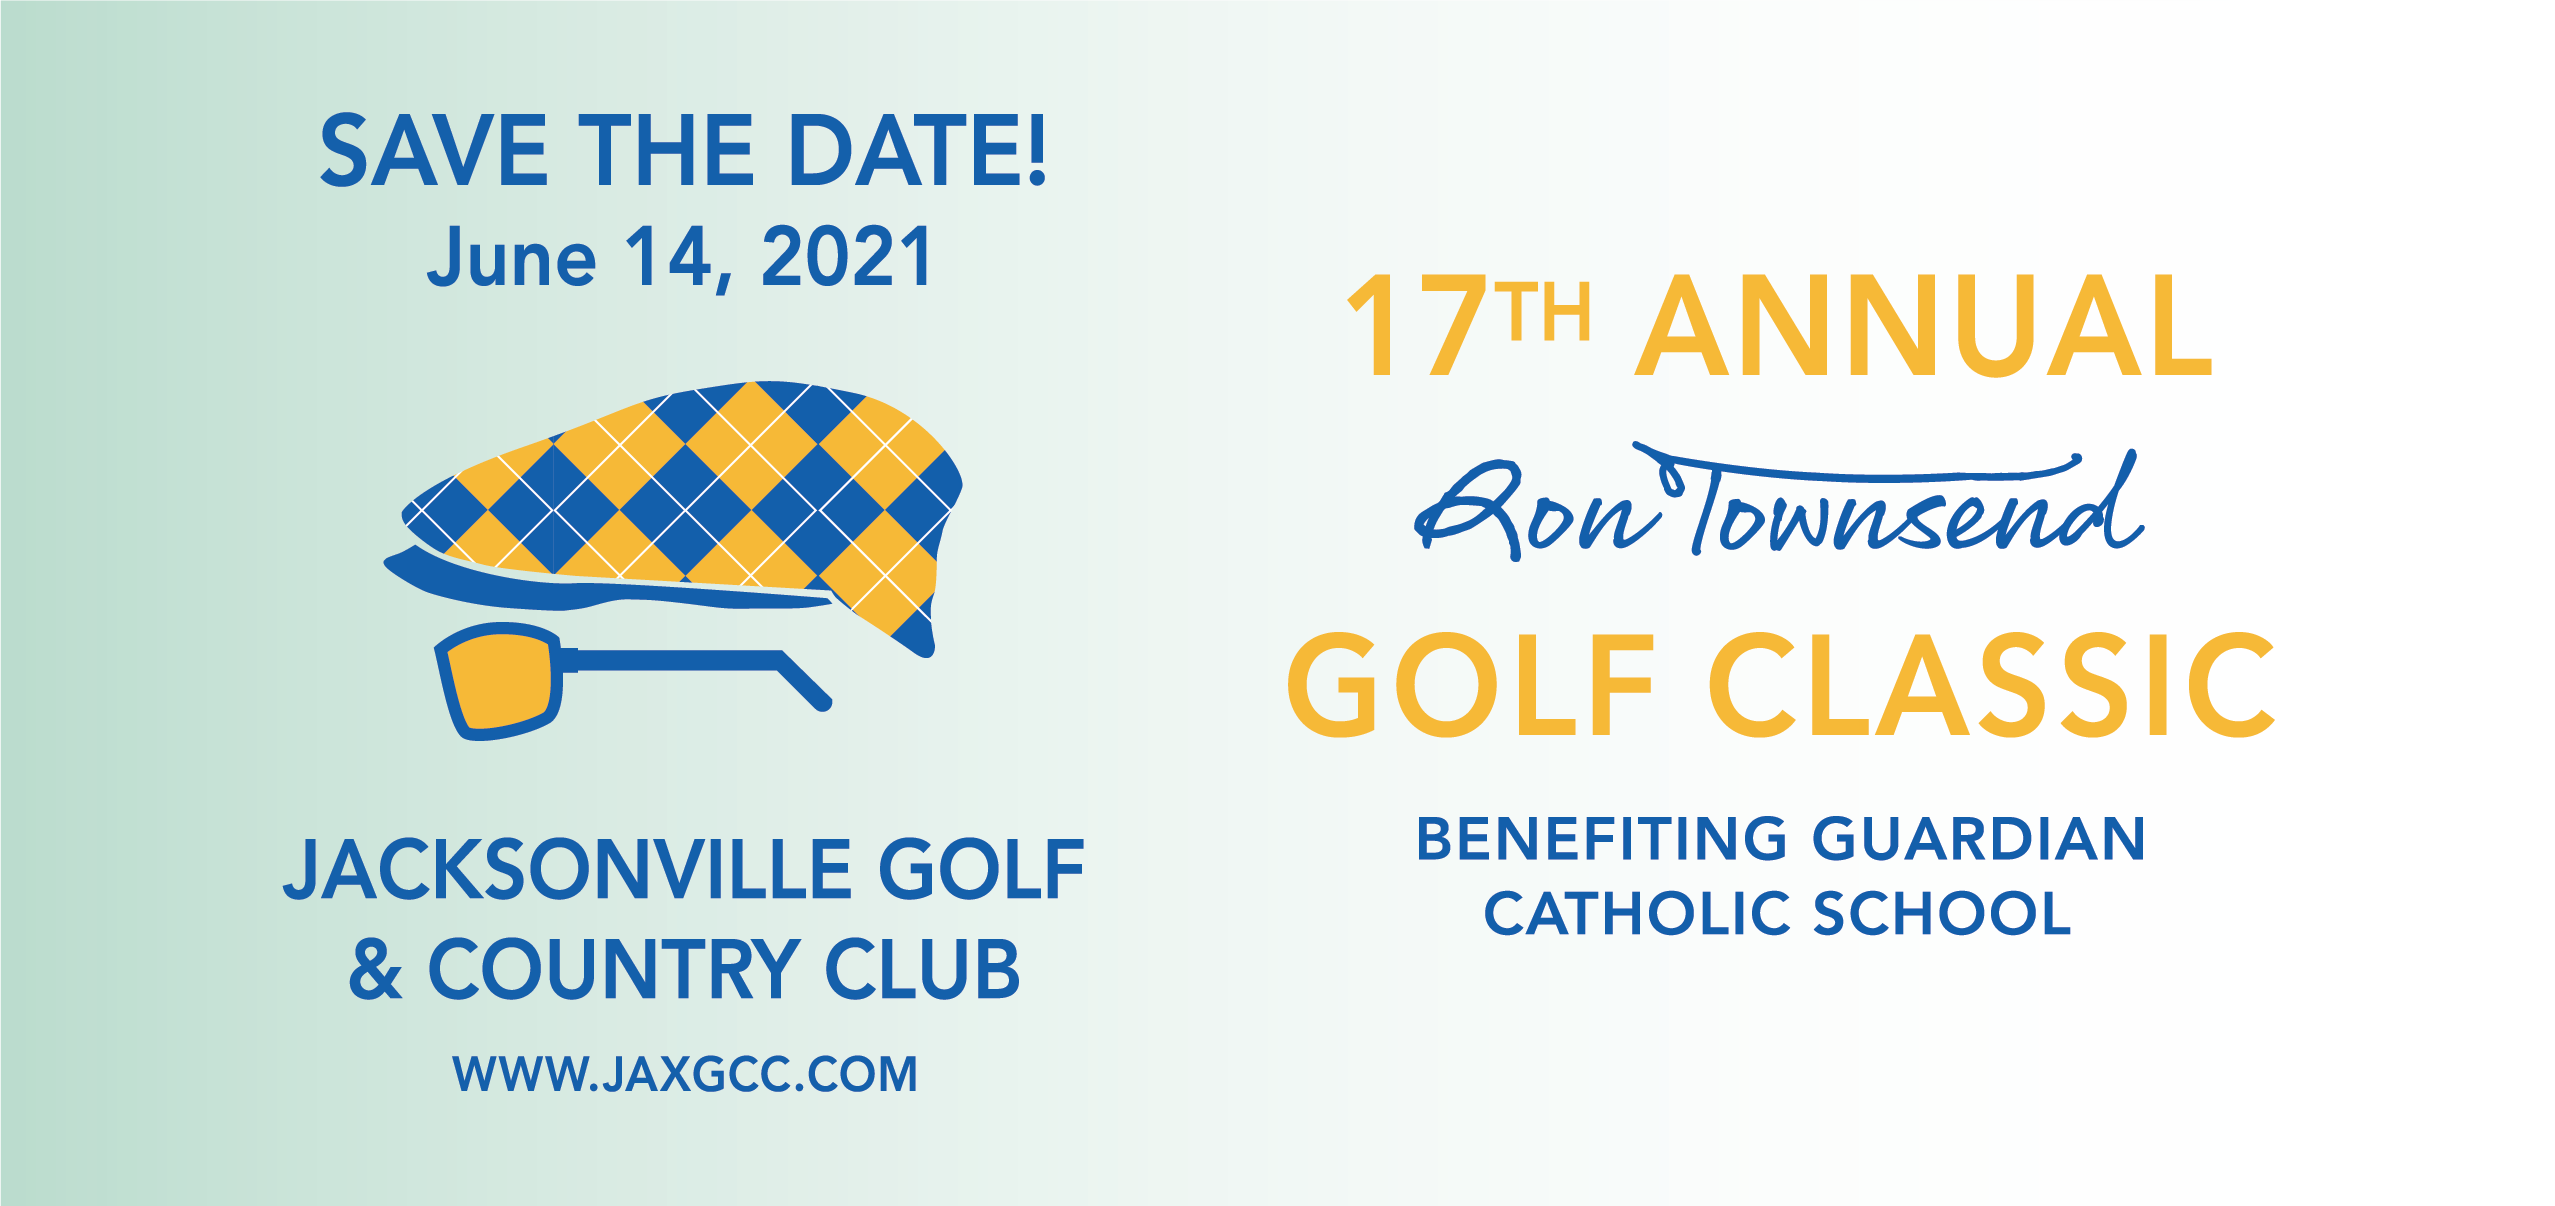 17th Annual Ron Townsend Golf Classic Guardian Catholic Save the Date